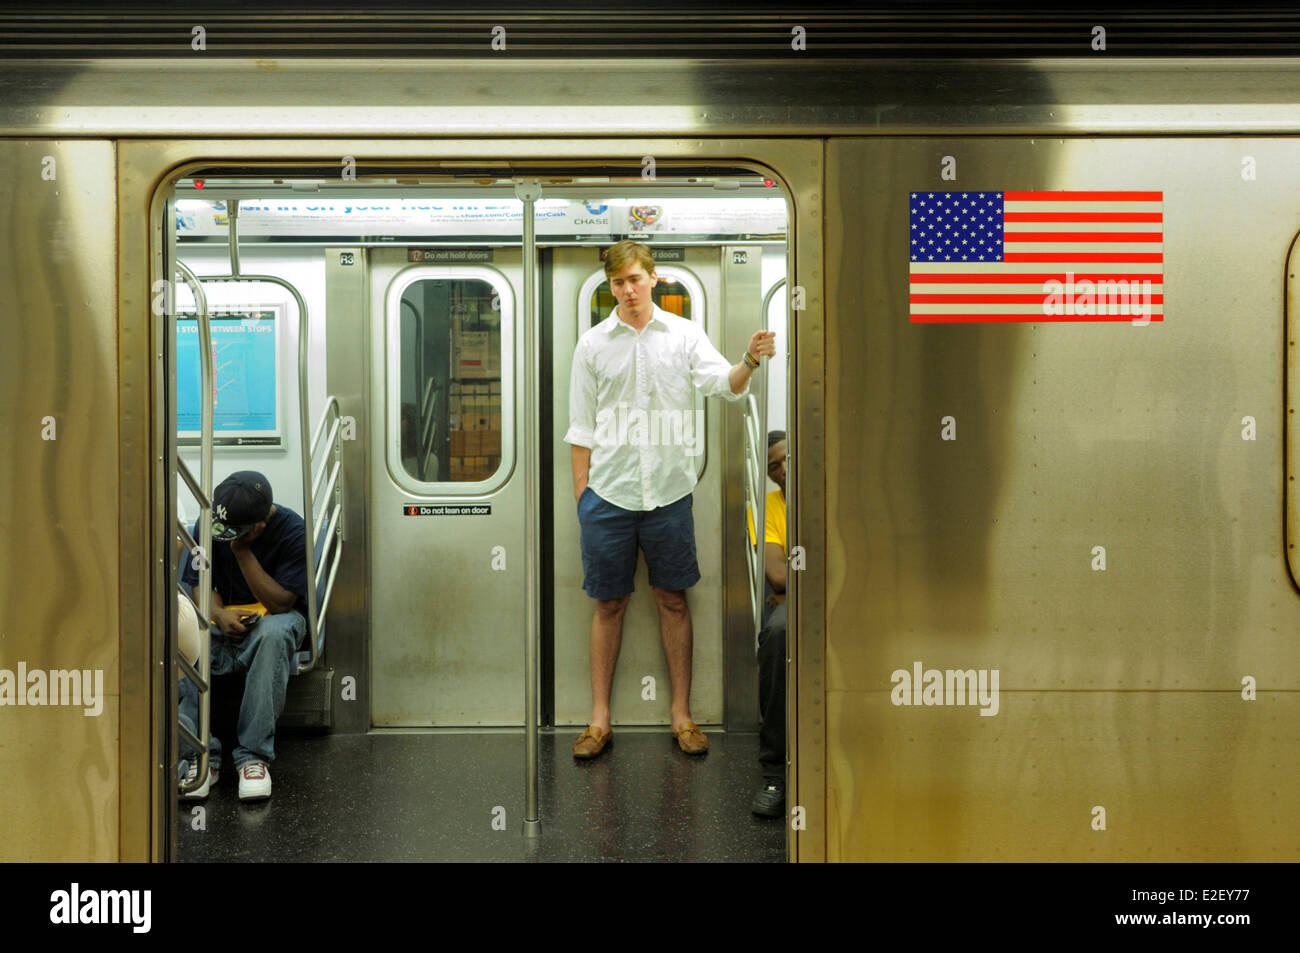 United States, New York, subway station in New York's 86th Street, a man in blue shorts and white shirt standing - Stock Image